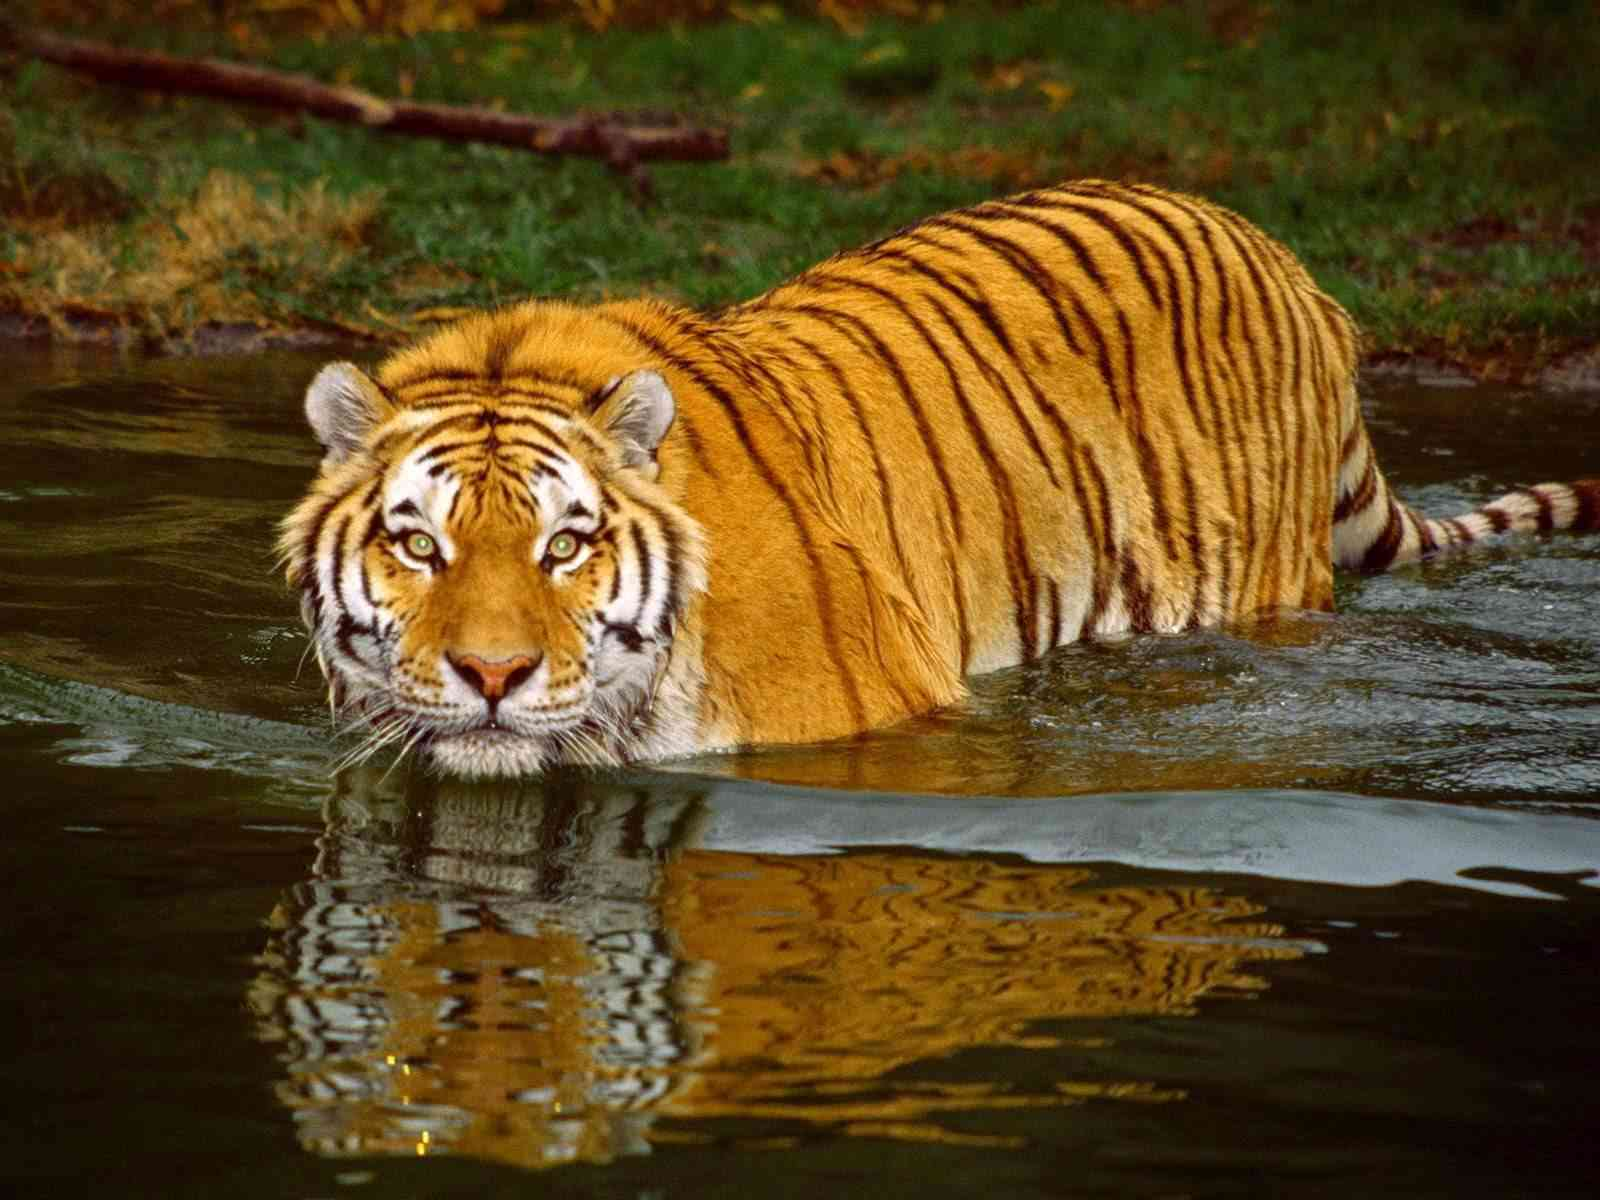 Tigers to be introduced in Mukundra Tiger Reserve